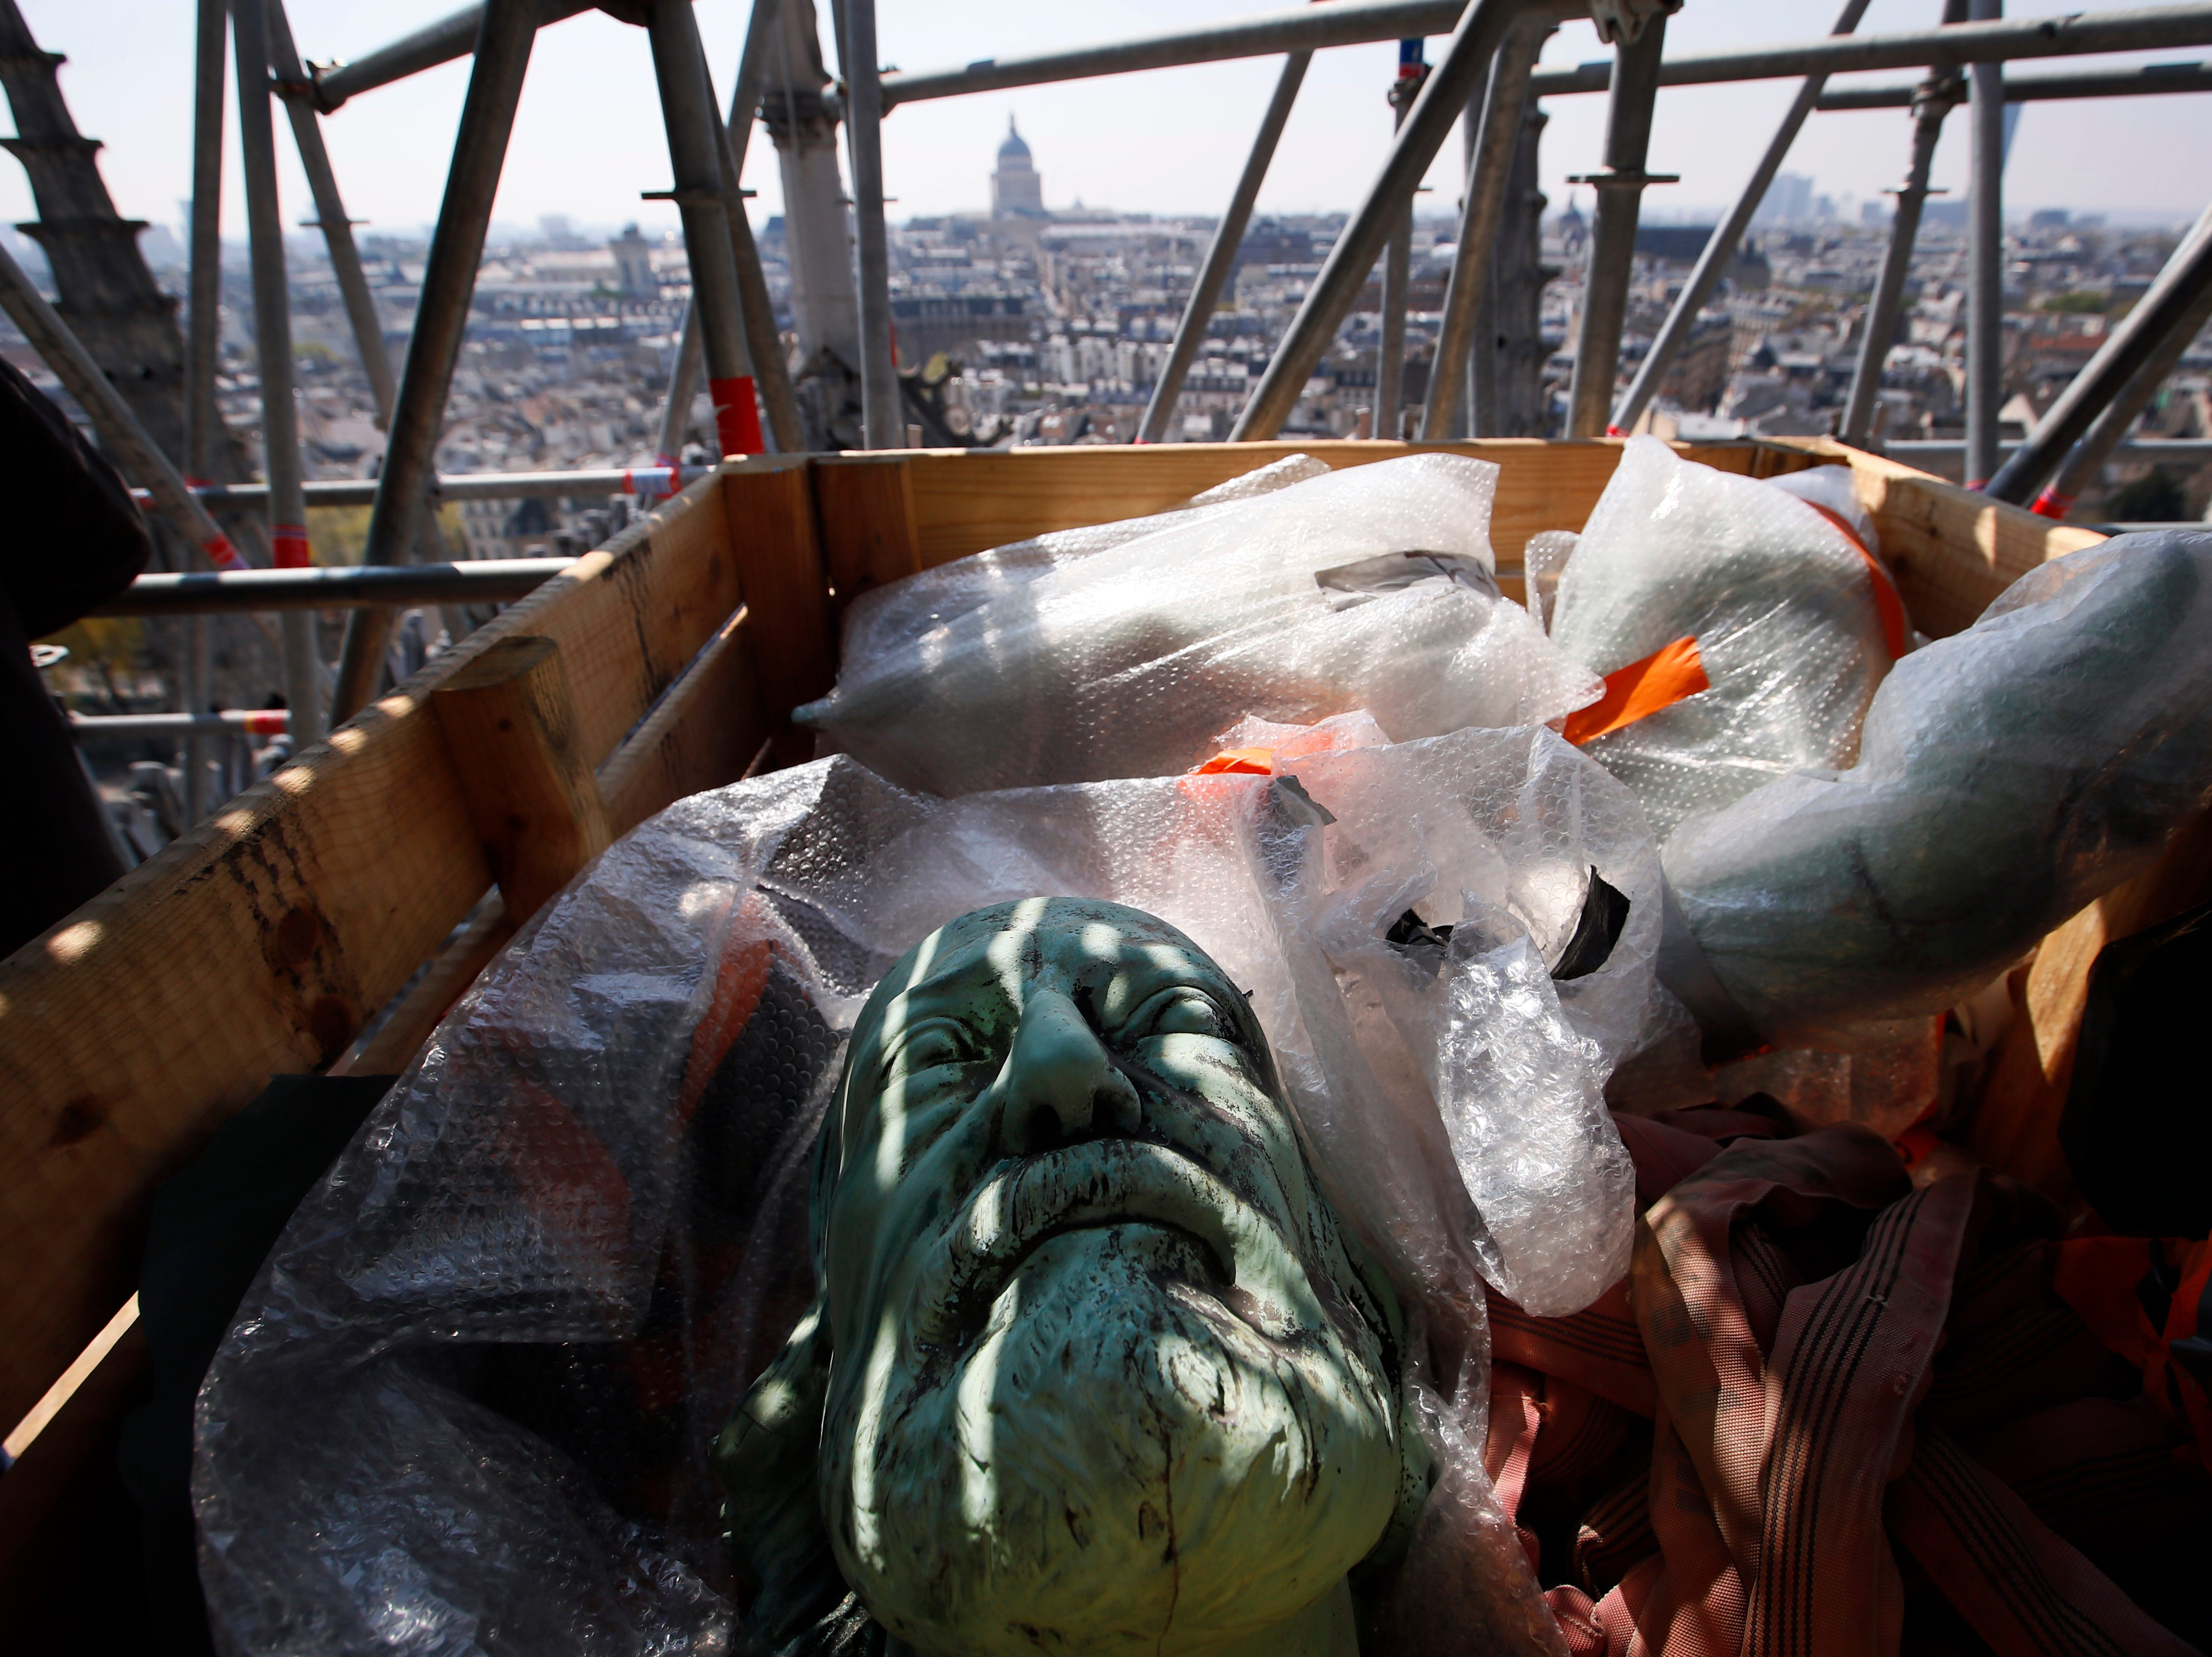 The head of a religious statue representing St. Thomas atop Paris' Notre Dame Cathedral is loaded in a box prior to descend to earth for the first time in over a century as part of a restoration, in Paris Thursday, April 11, 2019. The 16 greenish-gray copper statues, which represent the twelve apostles and four evangelists, are lowered by a 100 meter (105 yard) crane onto a truck to be taken for restoration in southwestern France.